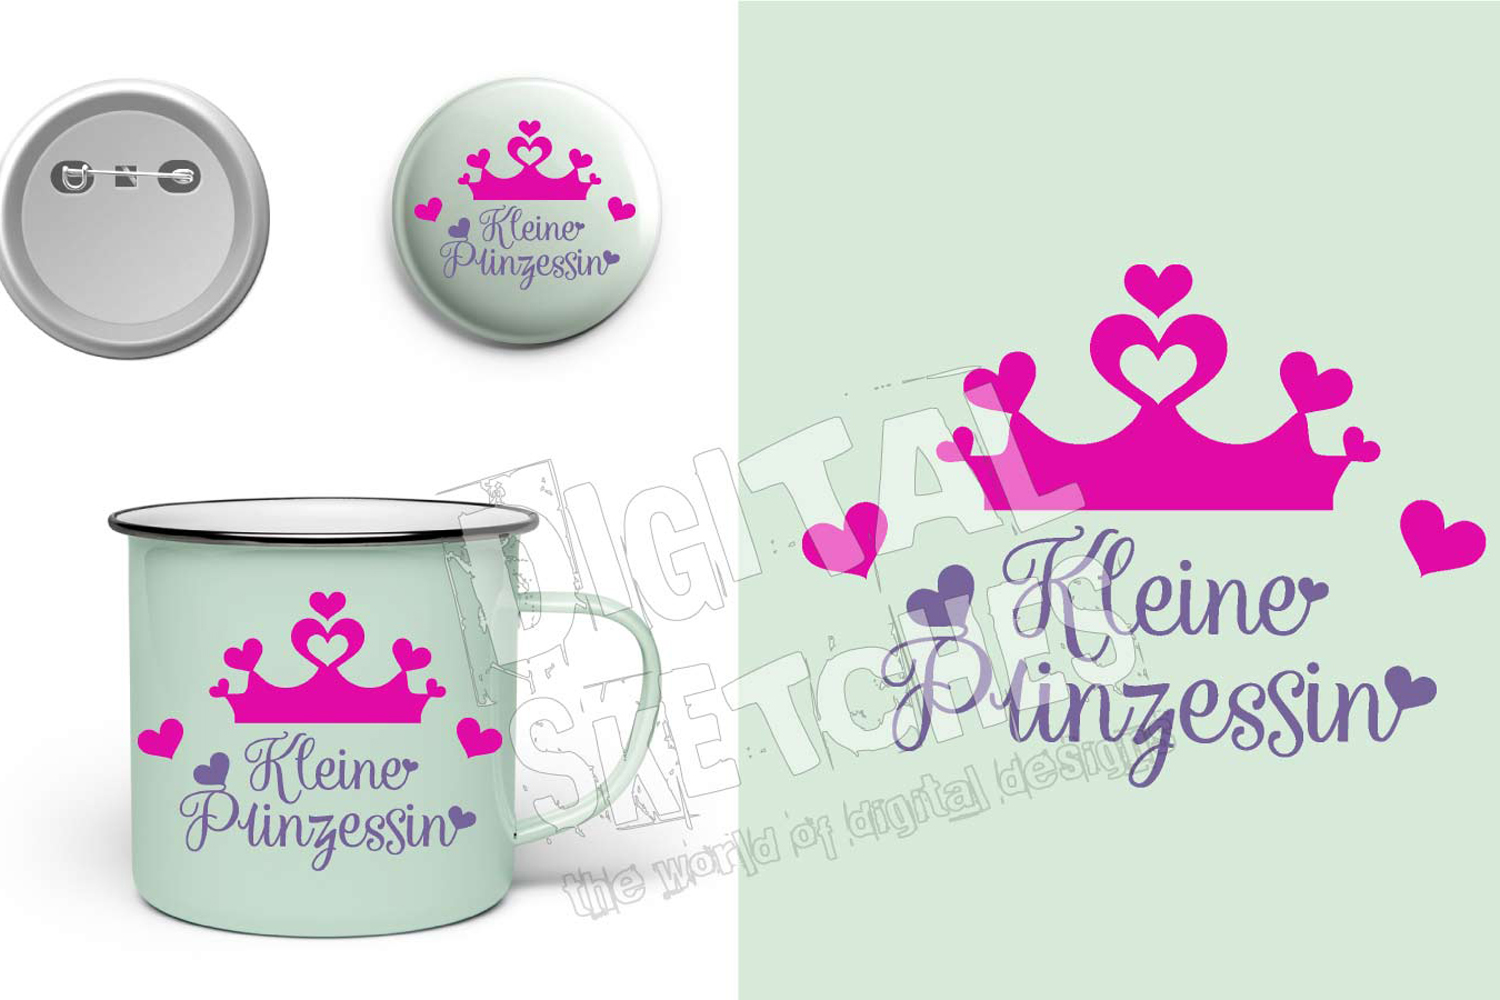 Crown Prinzessin Cut File Vector Graphics Illustration example image 2